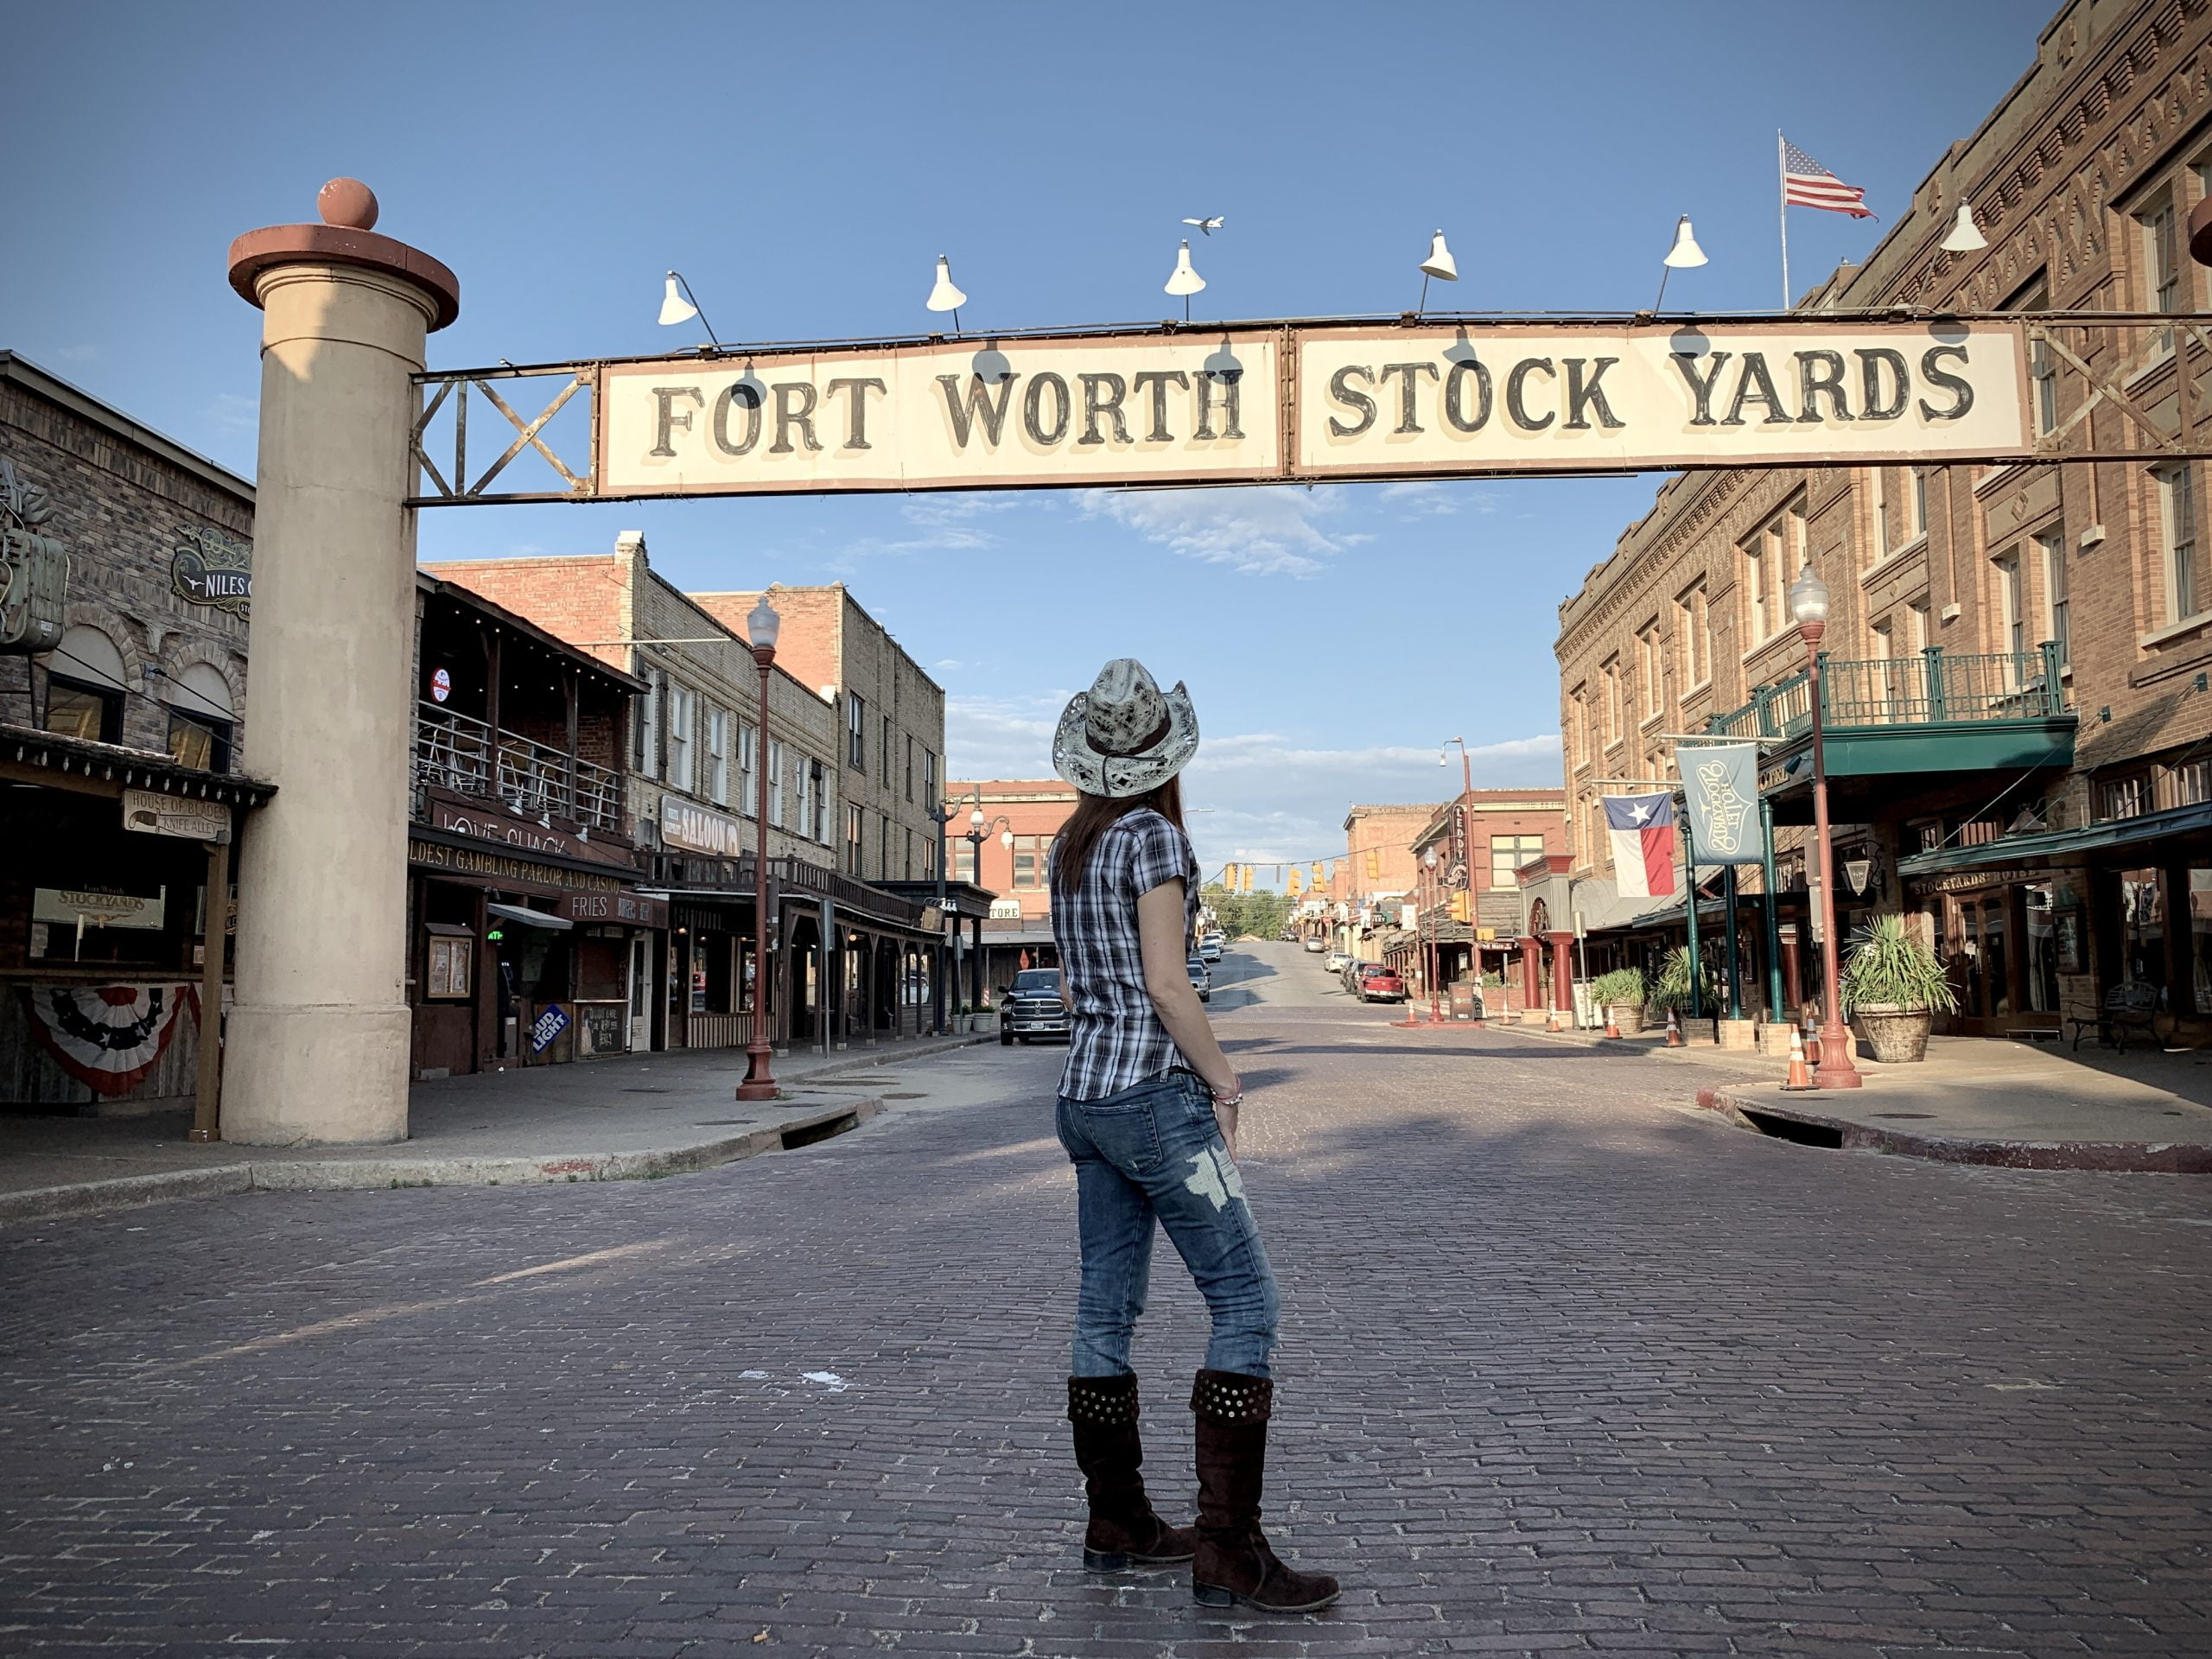 Stockyard Fort Worth - Texas